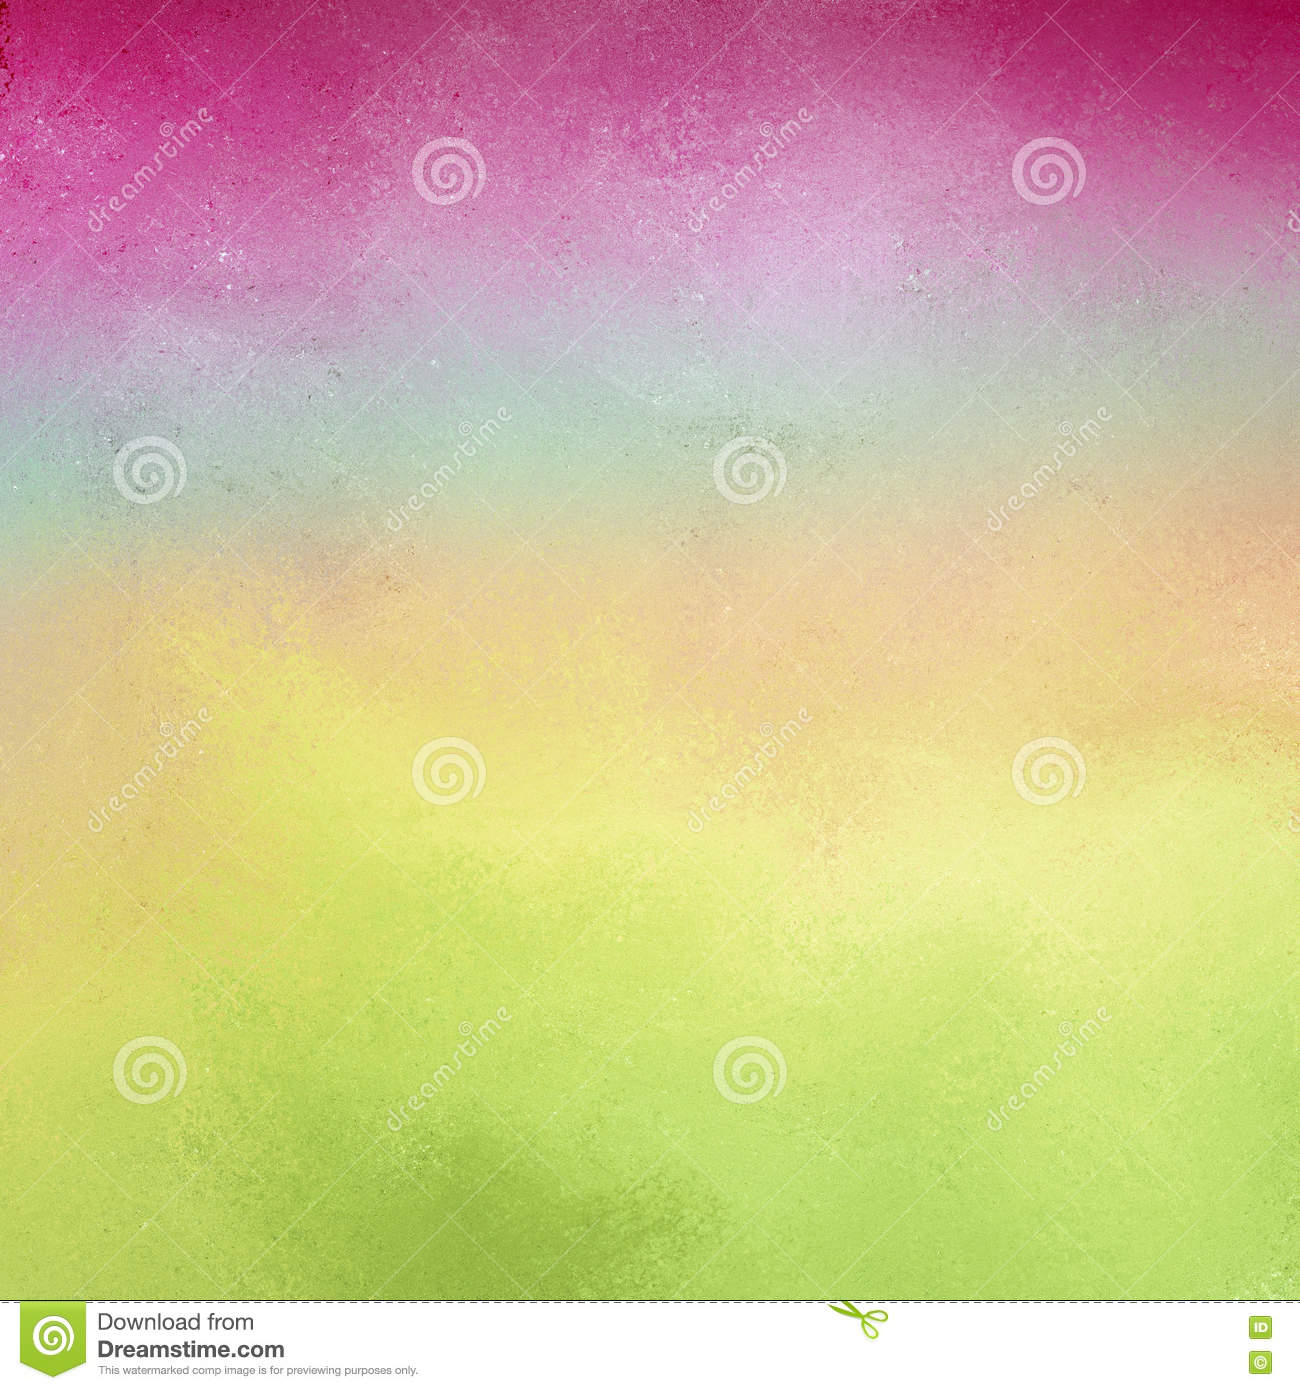 background of soft pink blue green and yellow colors and